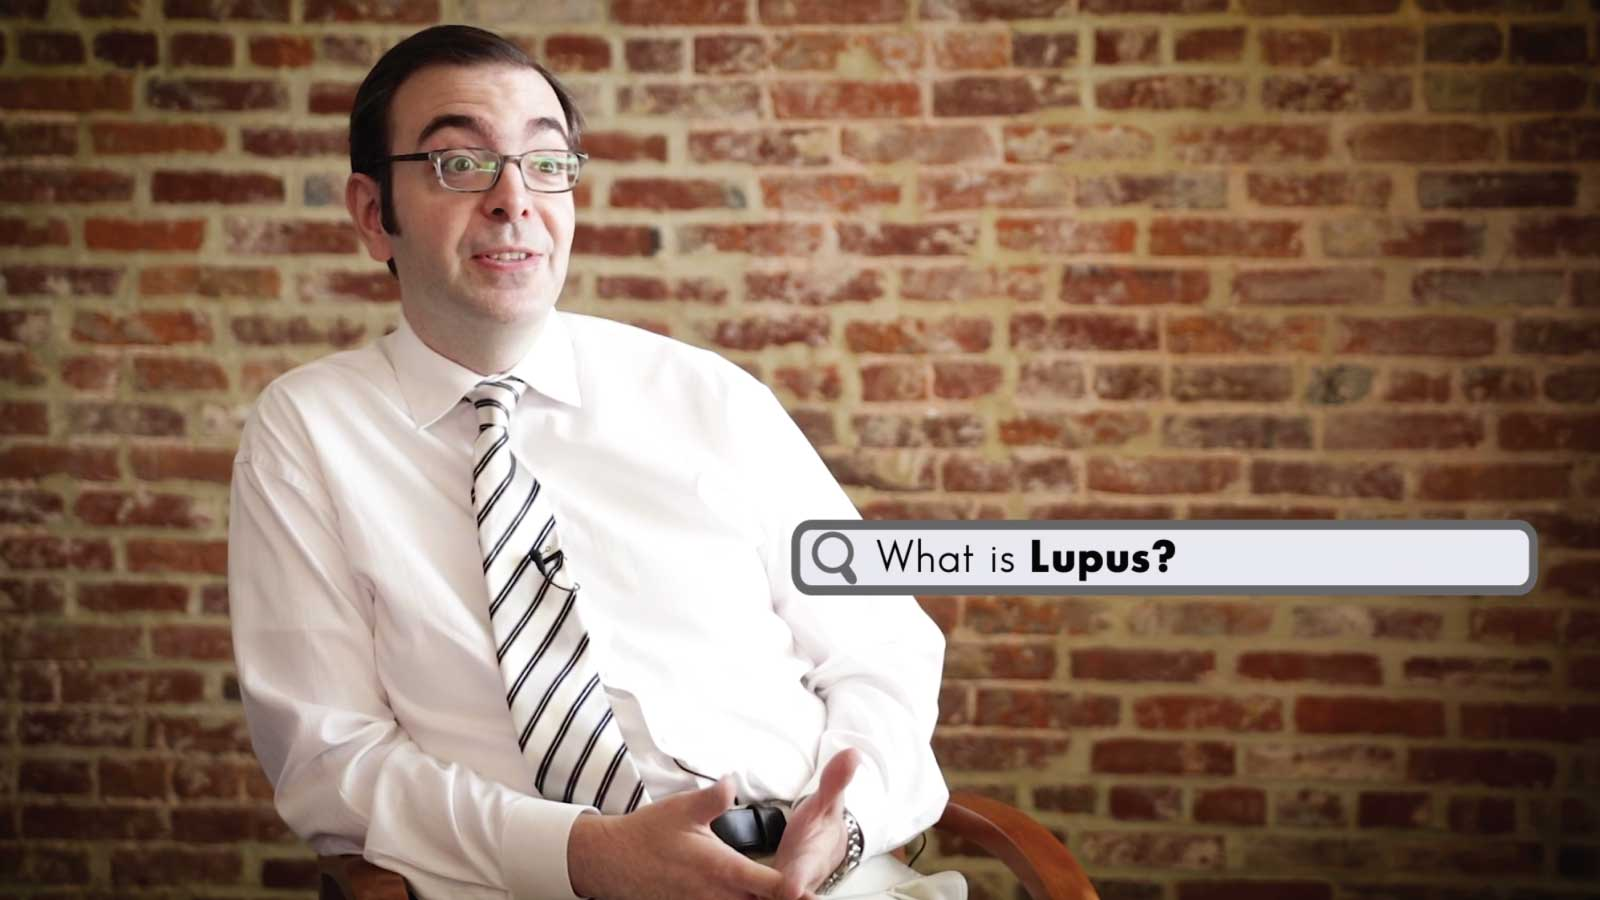 Lupus Myths: Diagnosing Lupus